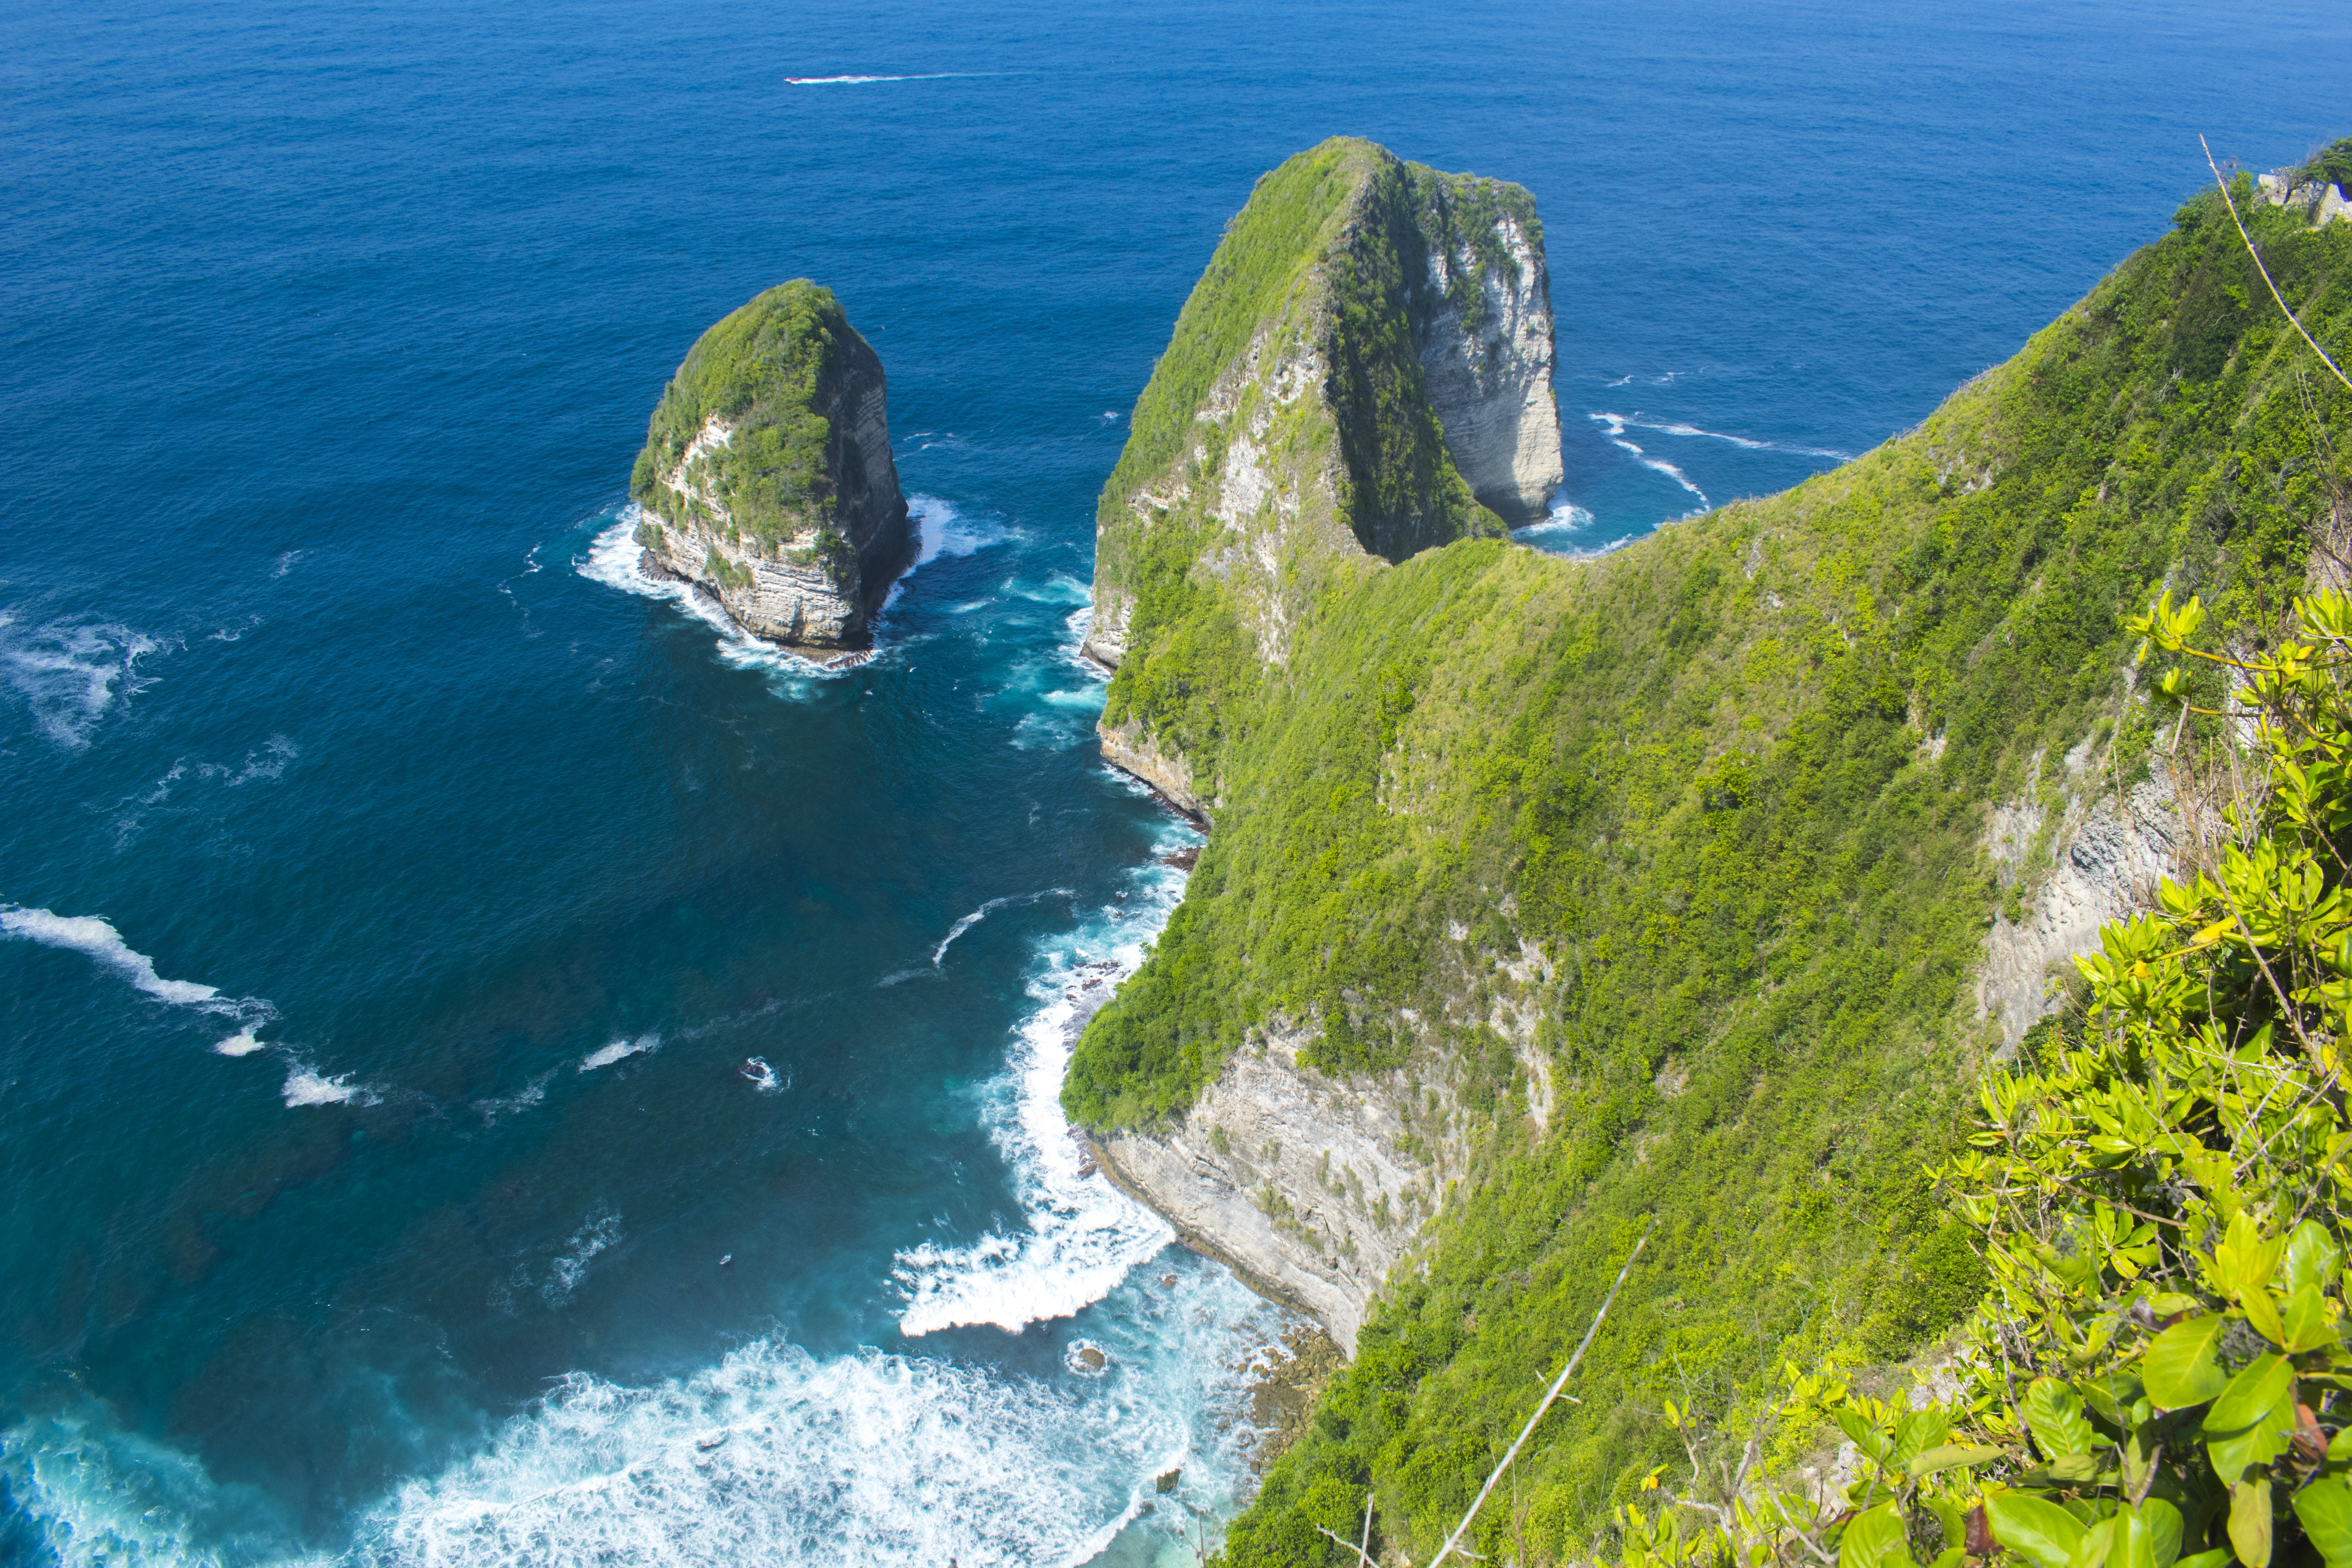 Aerial Photography Of Cliff And Sea